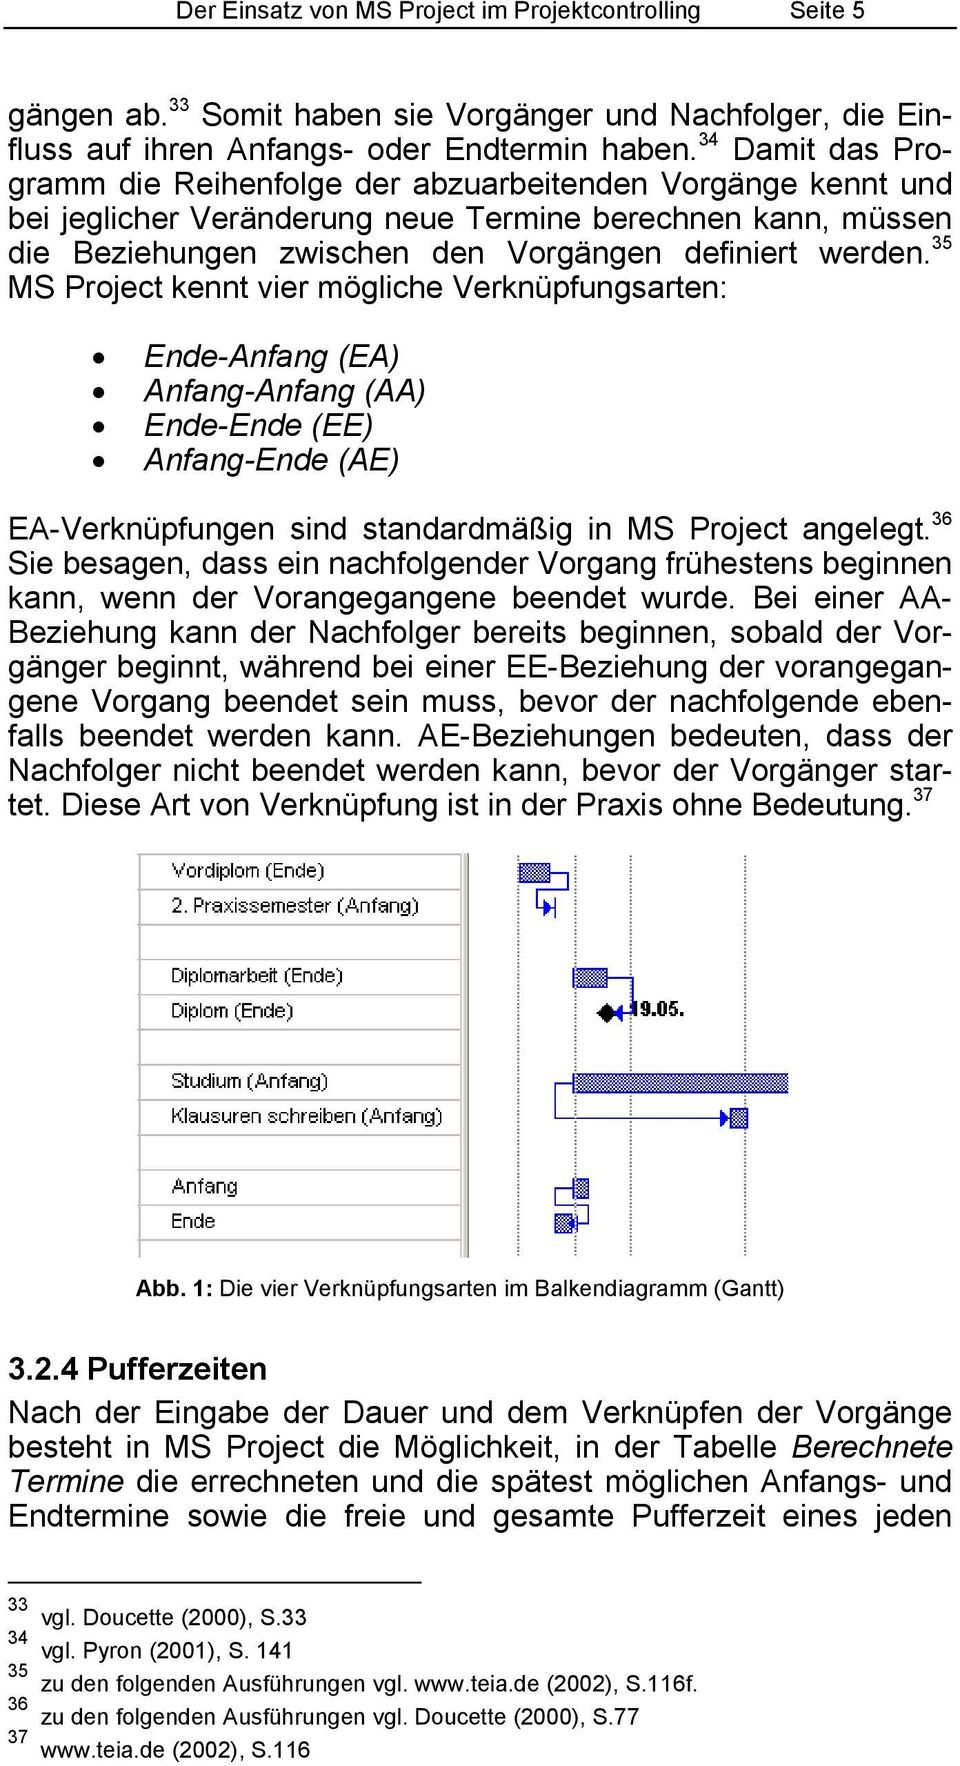 35 MS Project kennt vier mögliche Verknüpfungsarten: Ende-Anfang (EA) Anfang-Anfang (AA) Ende-Ende (EE) Anfang-Ende (AE) EA-Verknüpfungen sind standardmäßig in MS Project angelegt.